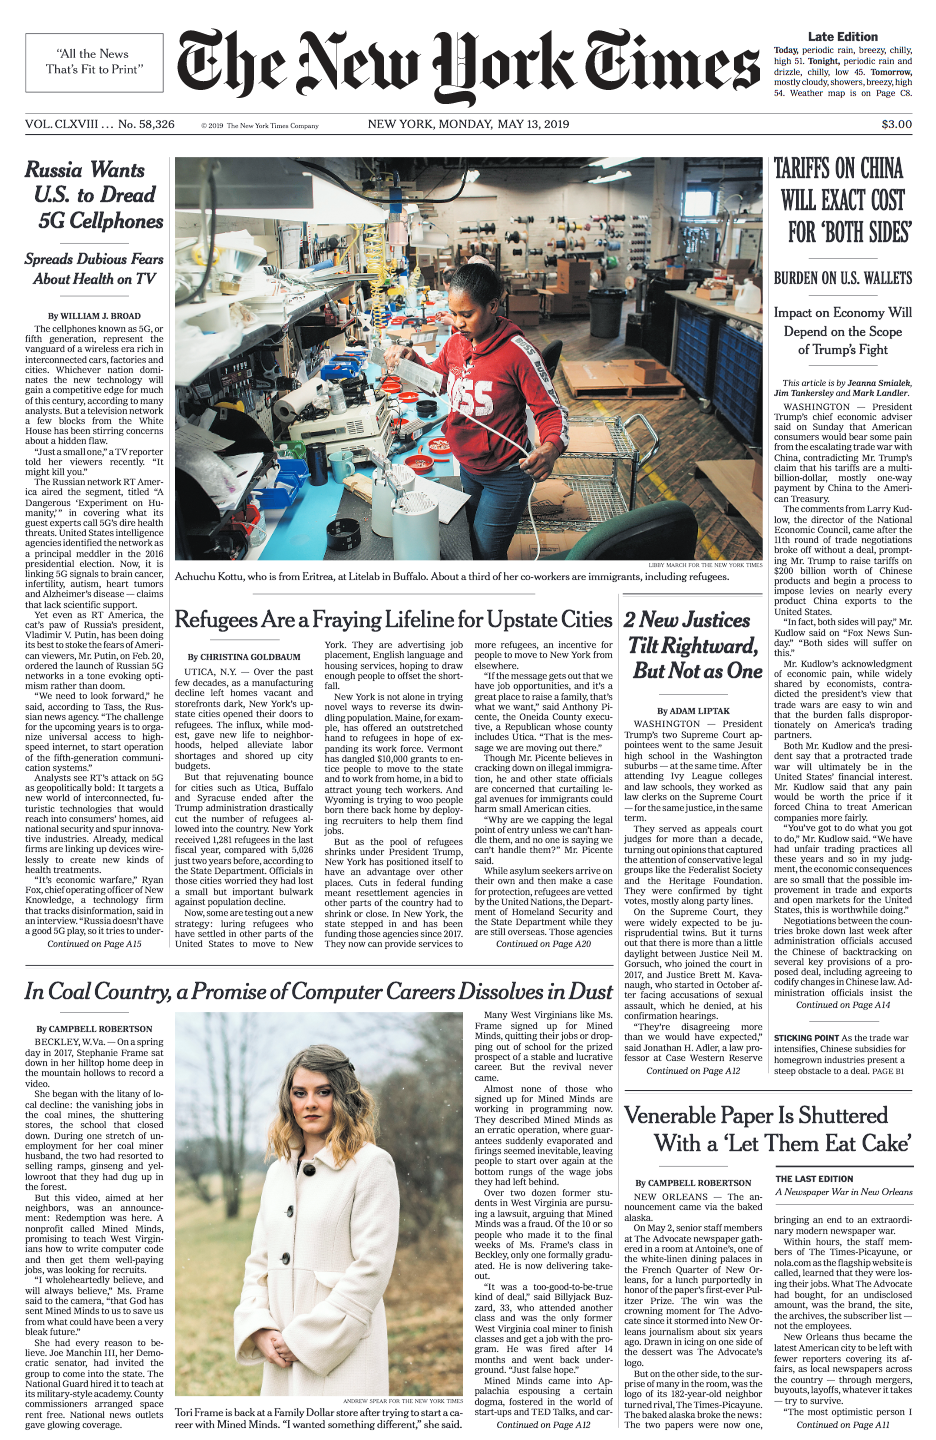 NYT_FrontPage_051319.png